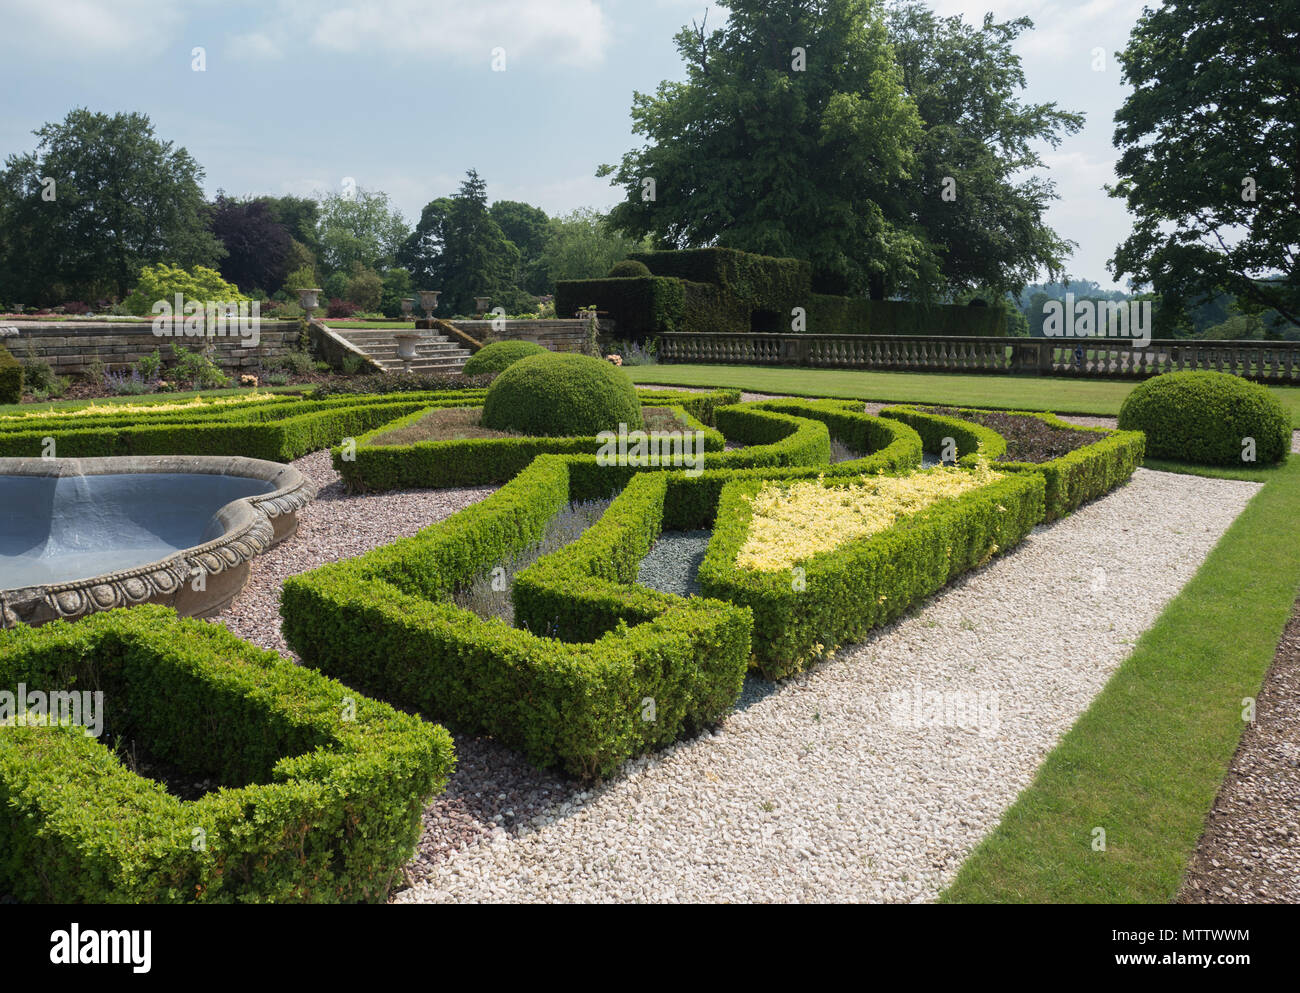 Weston-under-Lizard, England, 29th, May, 2018.  Weston Park Stately House.  The topiary of the formal gardens of the main house. - Stock Image